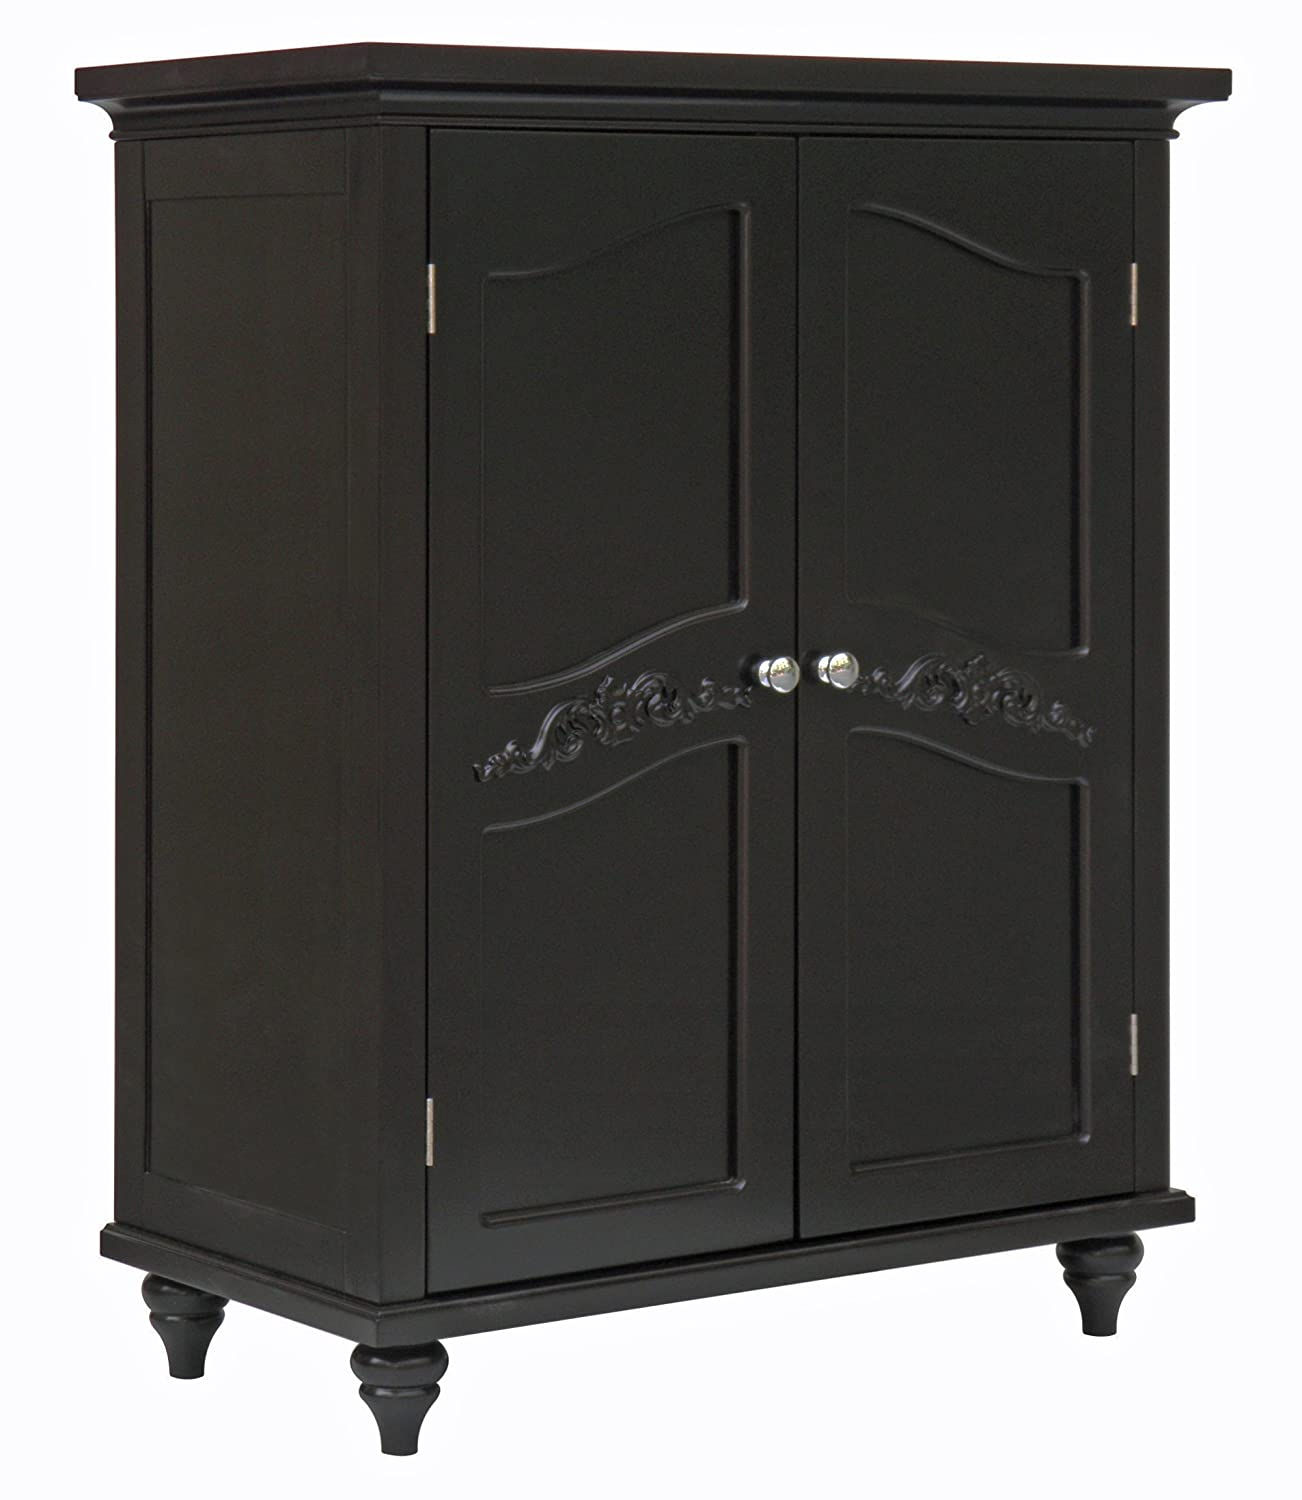 Wondrous Elegant Home Fashion Vera 2 Door Floor Cabinet Dark Espresso Interior Design Ideas Gentotryabchikinfo